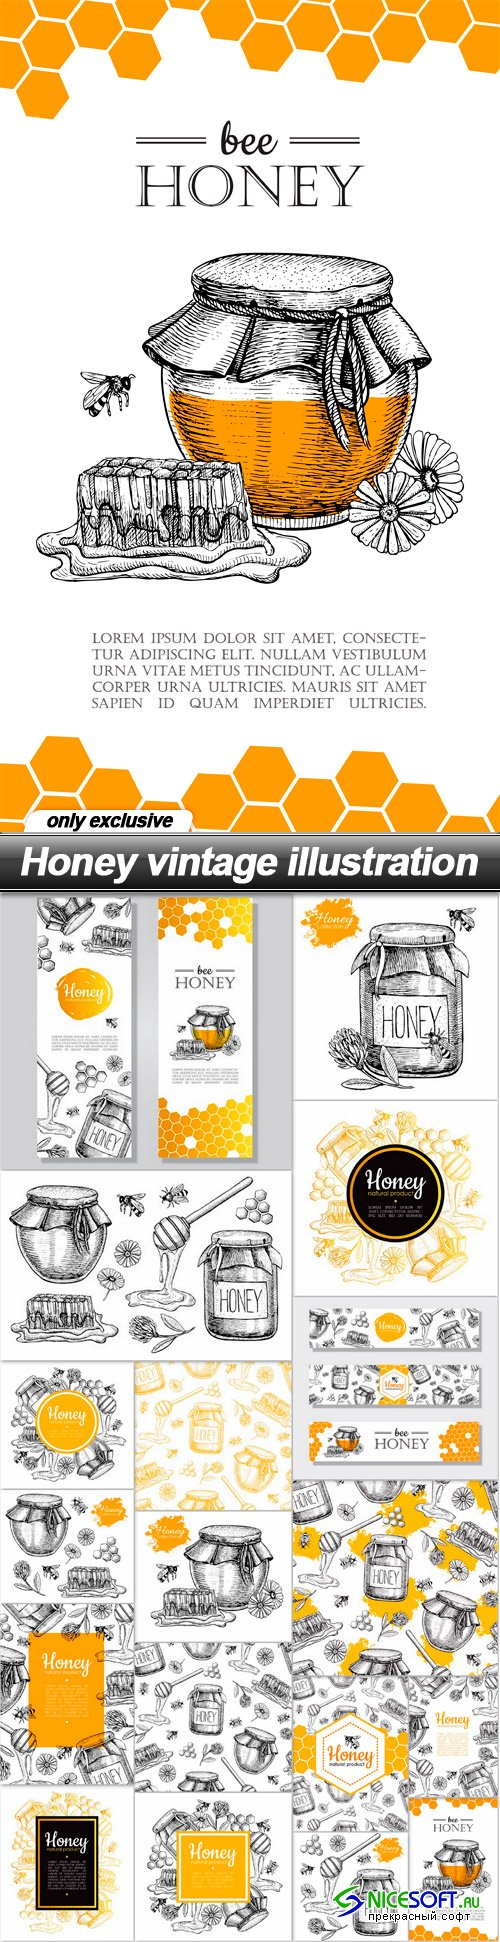 Honey vintage illustration